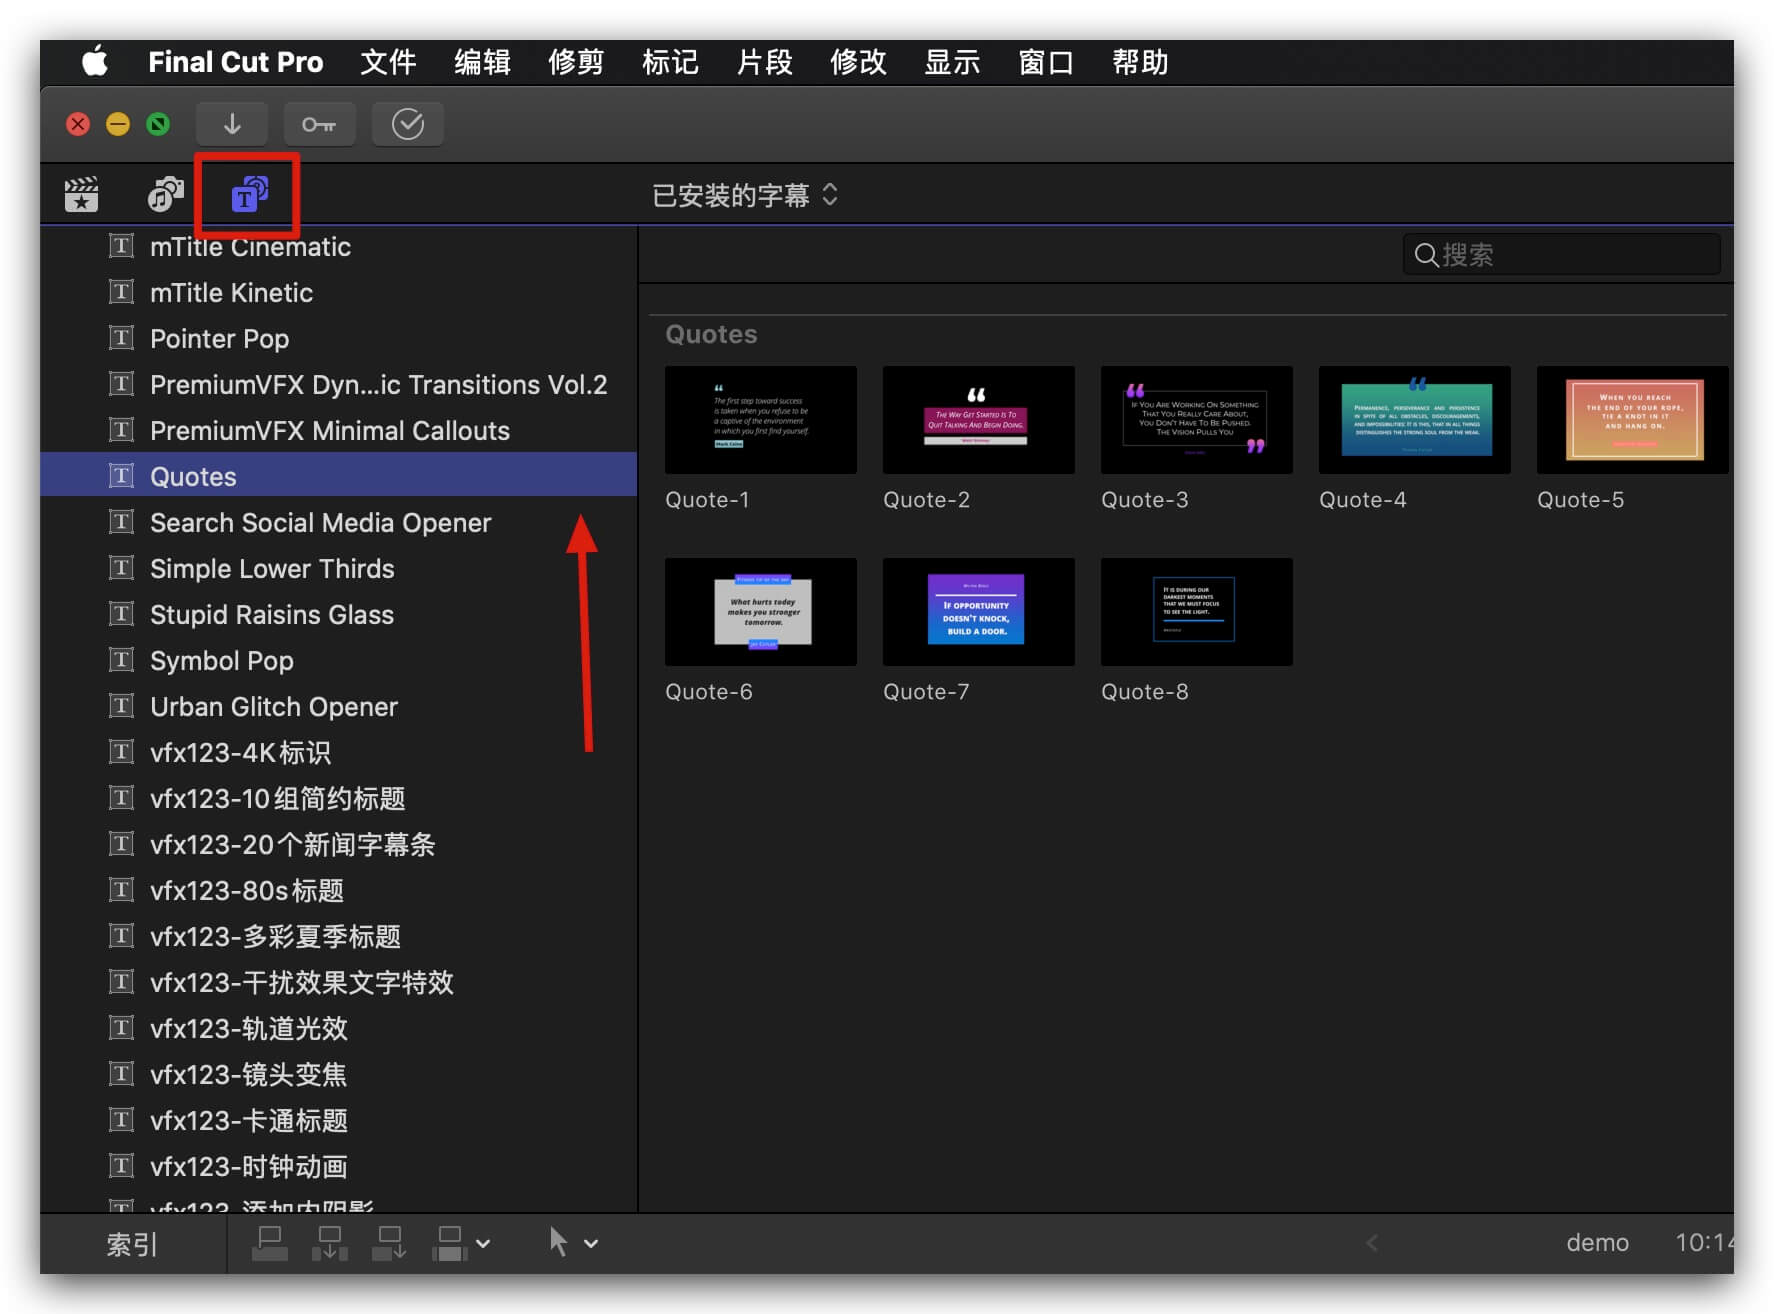 fcpx插件 段落文字标题信息板动画模板 Self-Resizing Quote Titles